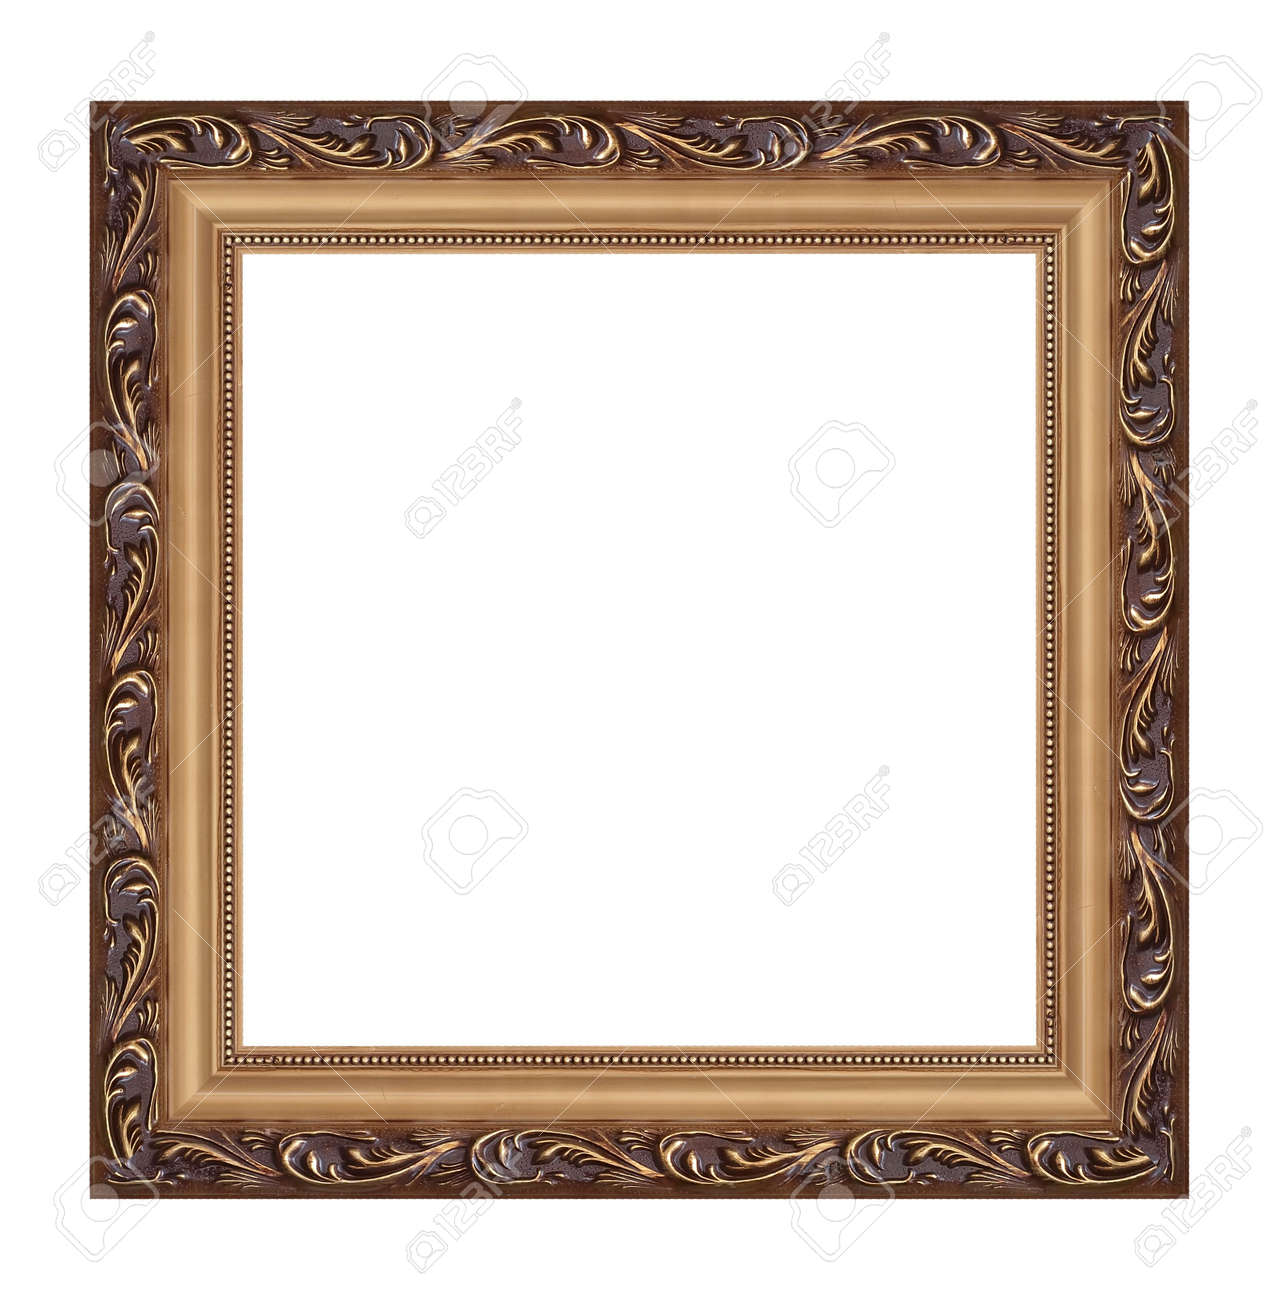 Old Frame On A White Background Stock Photo, Picture And Royalty ...